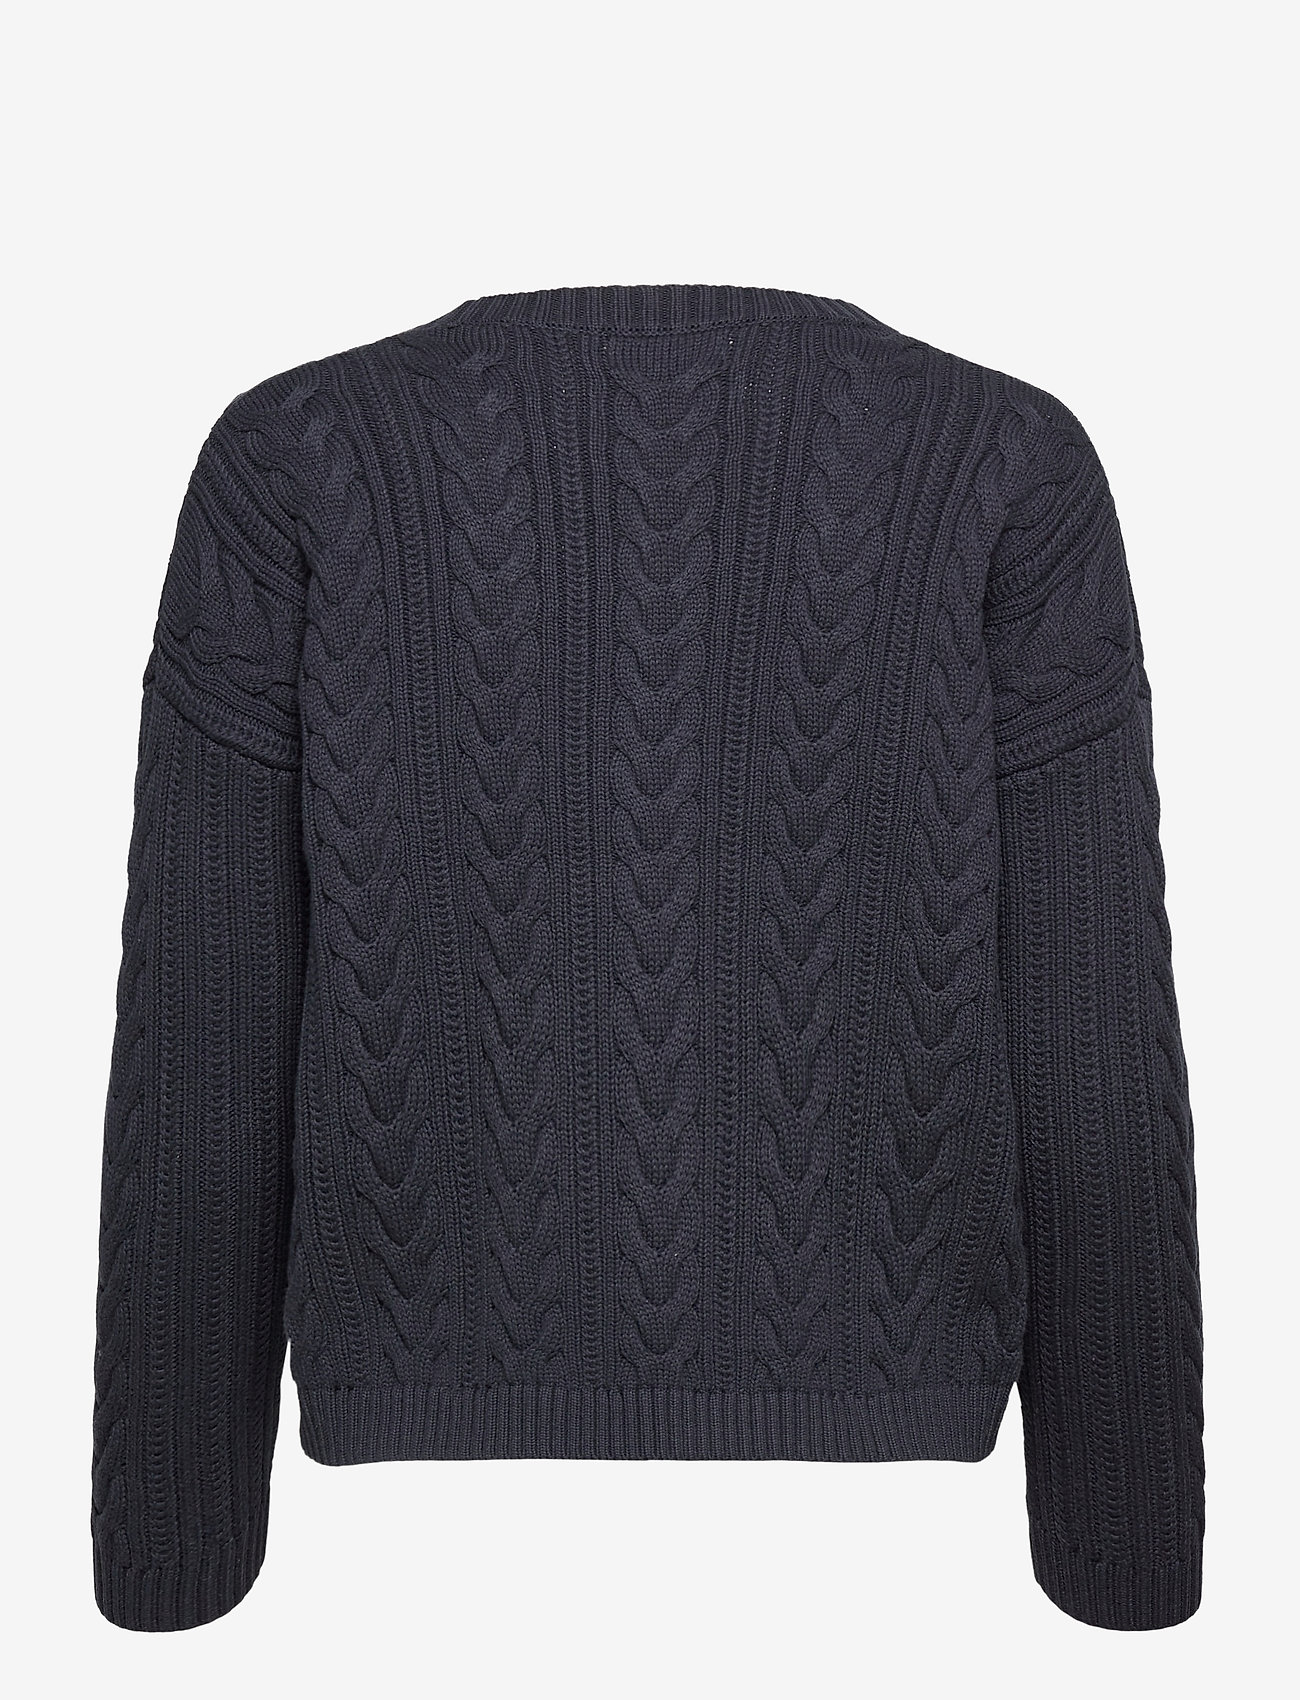 Superdry - DROPPED SHOULDER CABLE CREW - jumpers - eclipse navy - 1